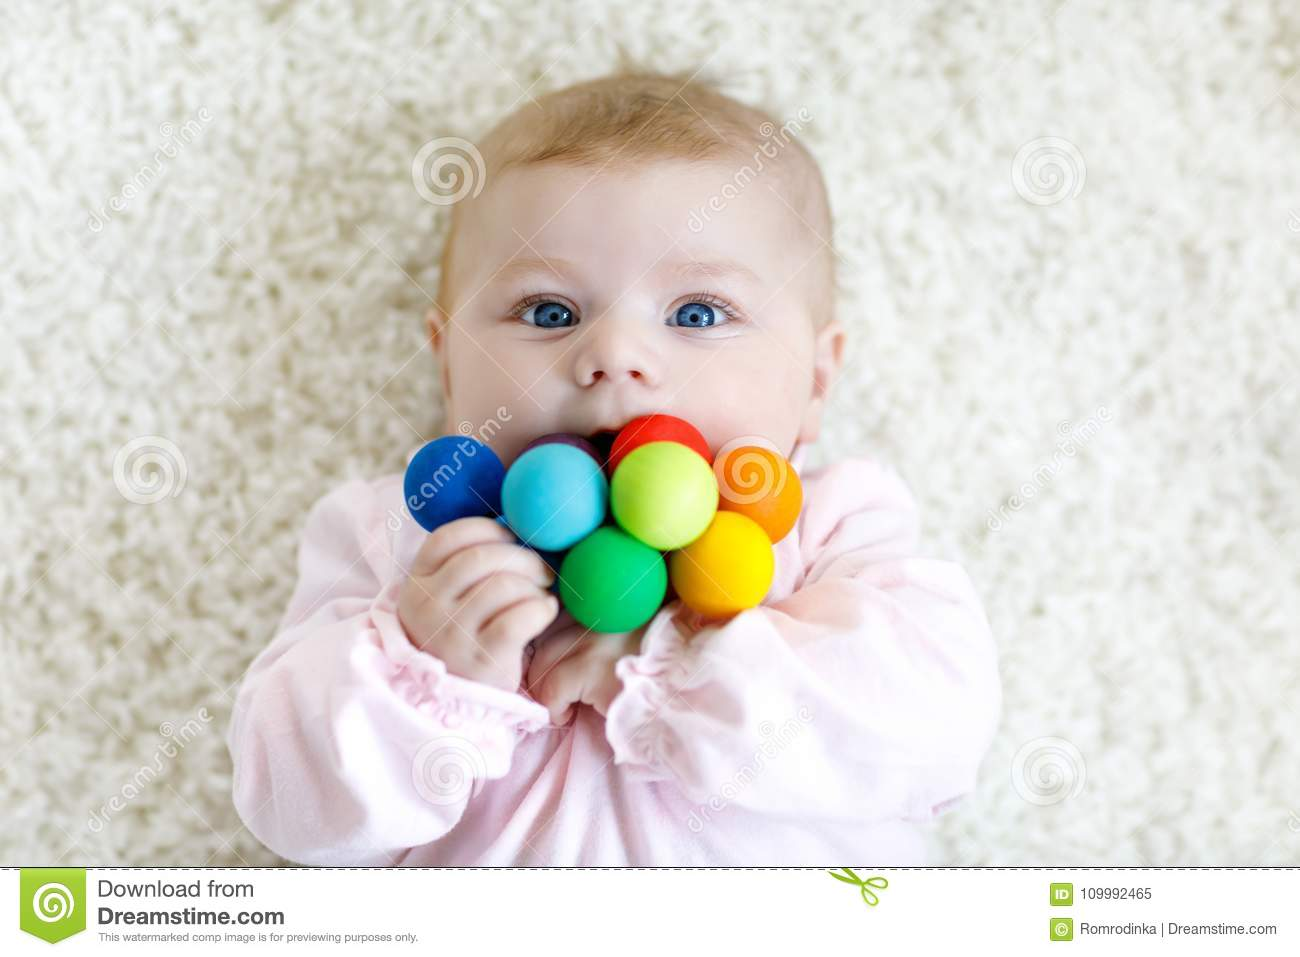 85b95e2615b Cute adorable newborn baby playing with colorful wooden rattle toy ball on white  background. New born child